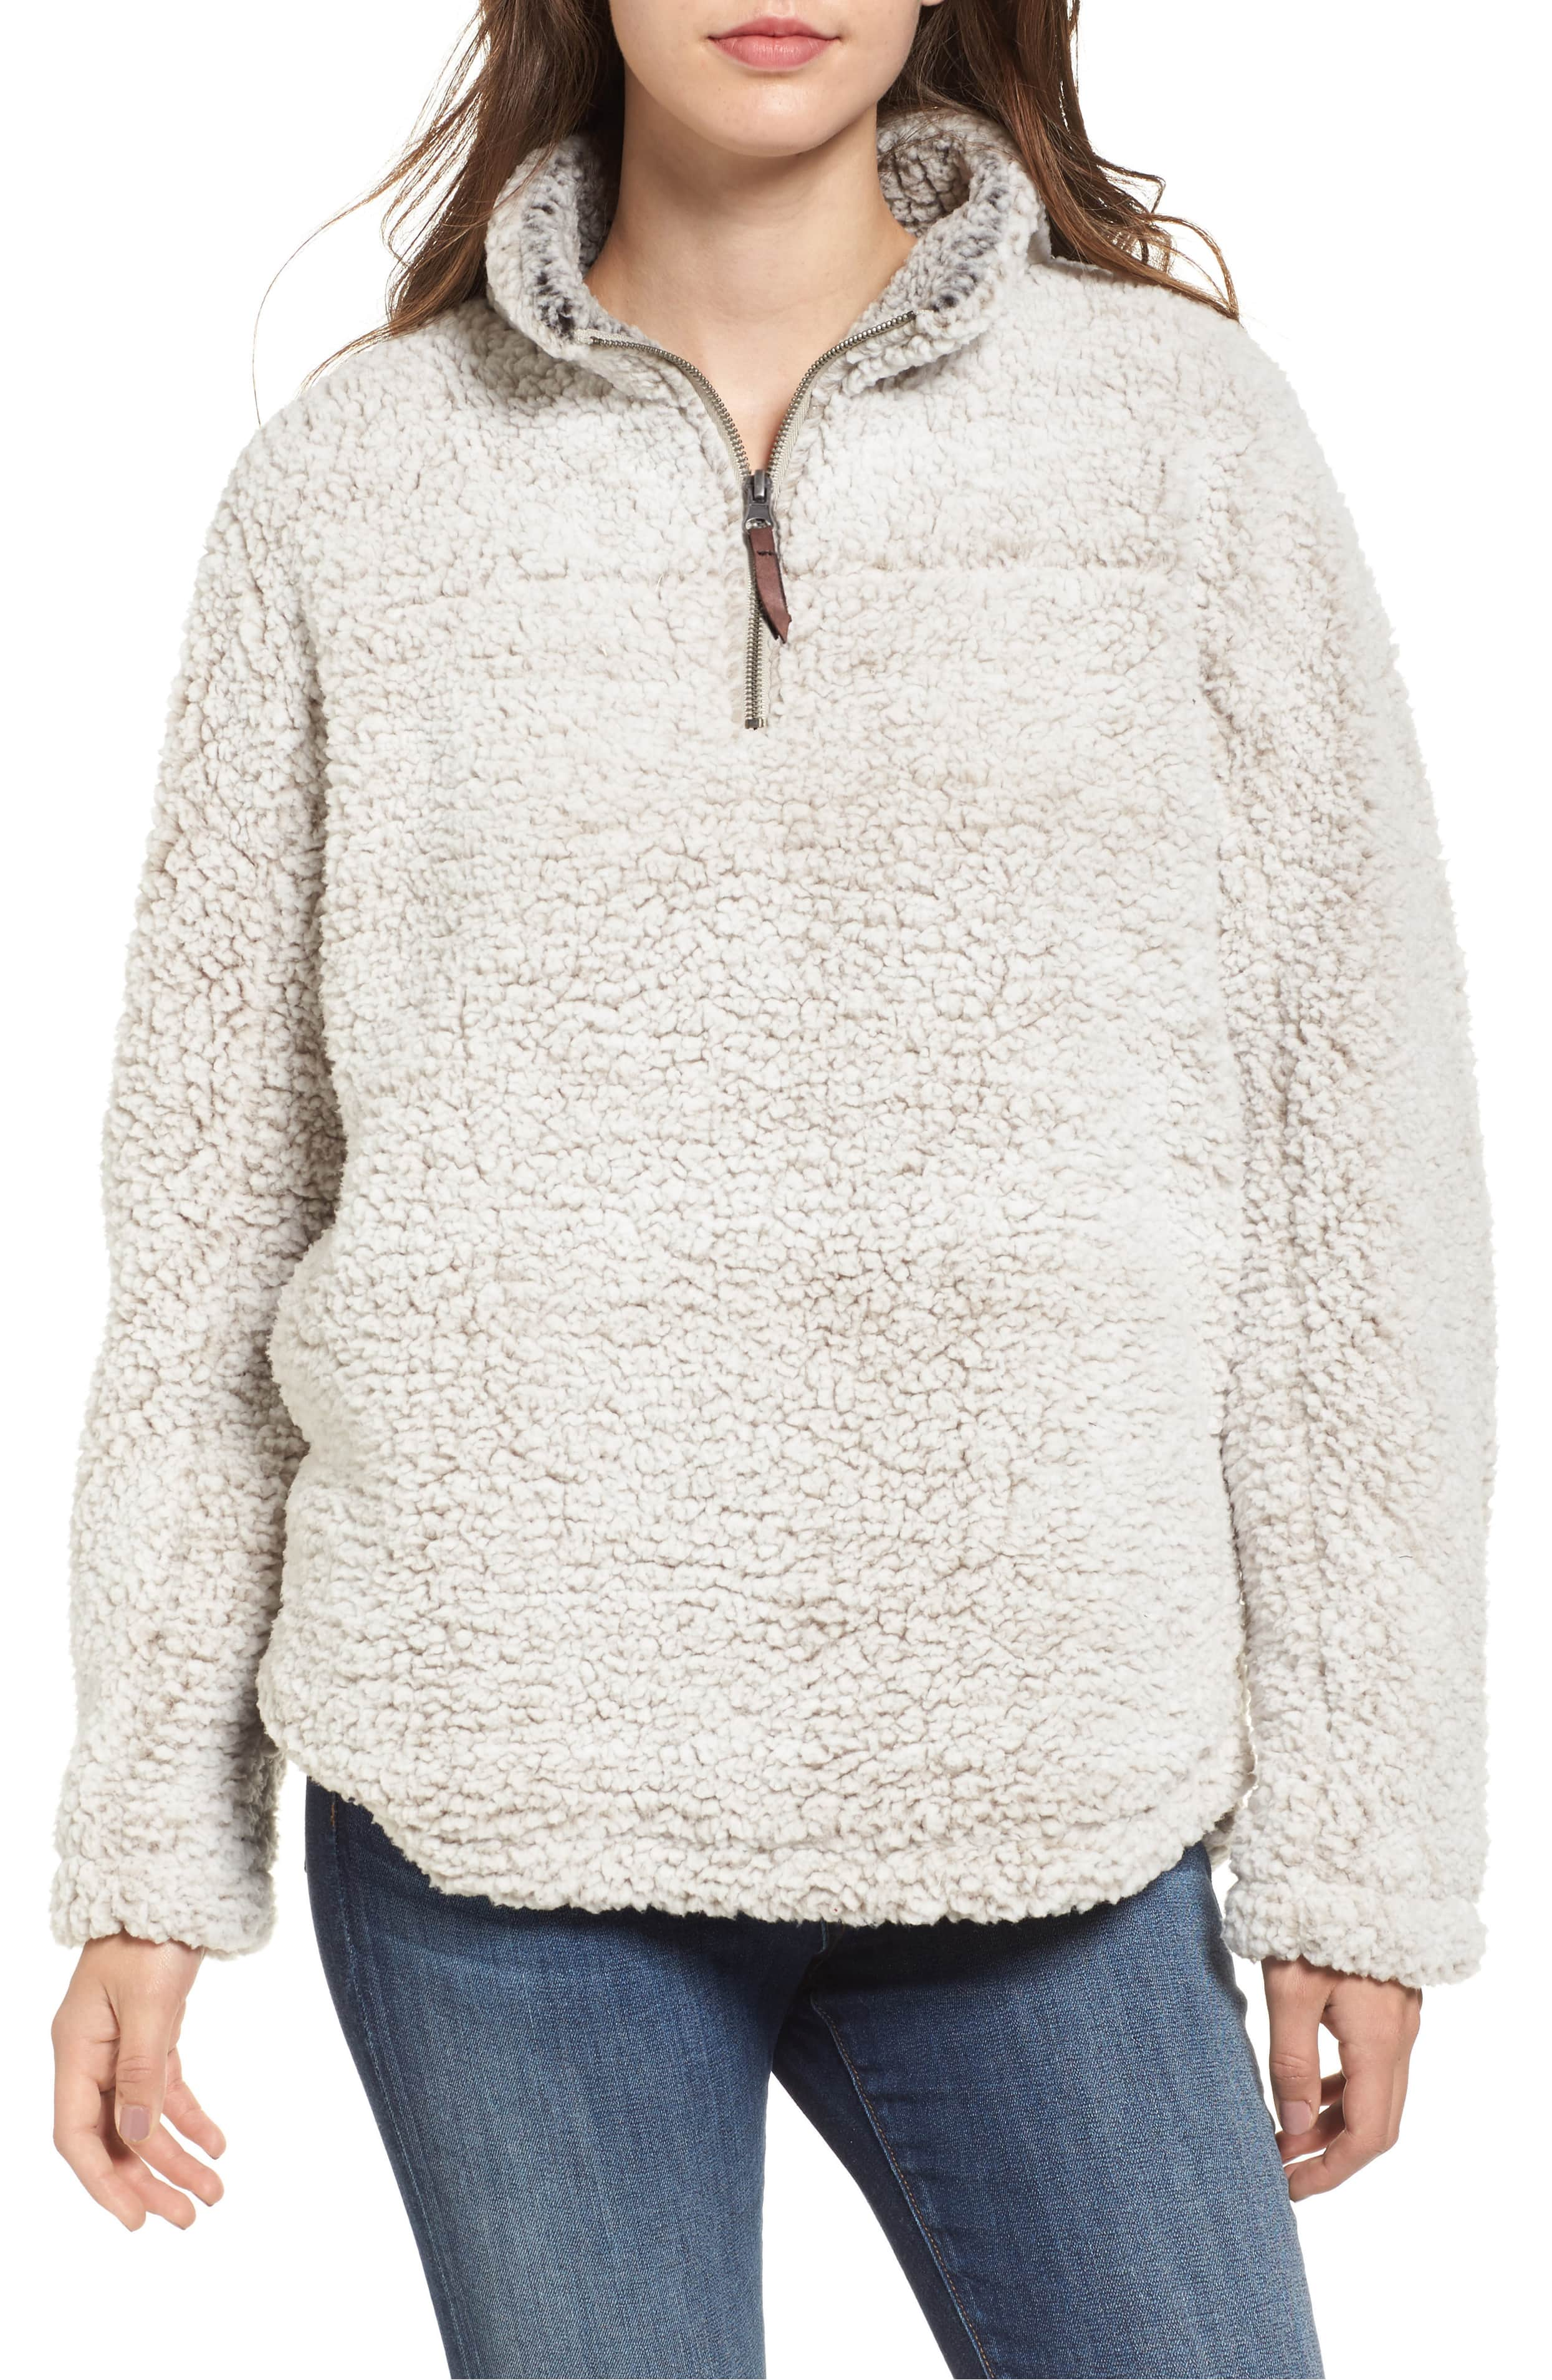 <p>This Wubby Fleece Pullover from THREAD & SUPPLY couldn't be any cozier and will make for killer Instagram pics. $78 (Image: Nordstrom)</p><p></p>